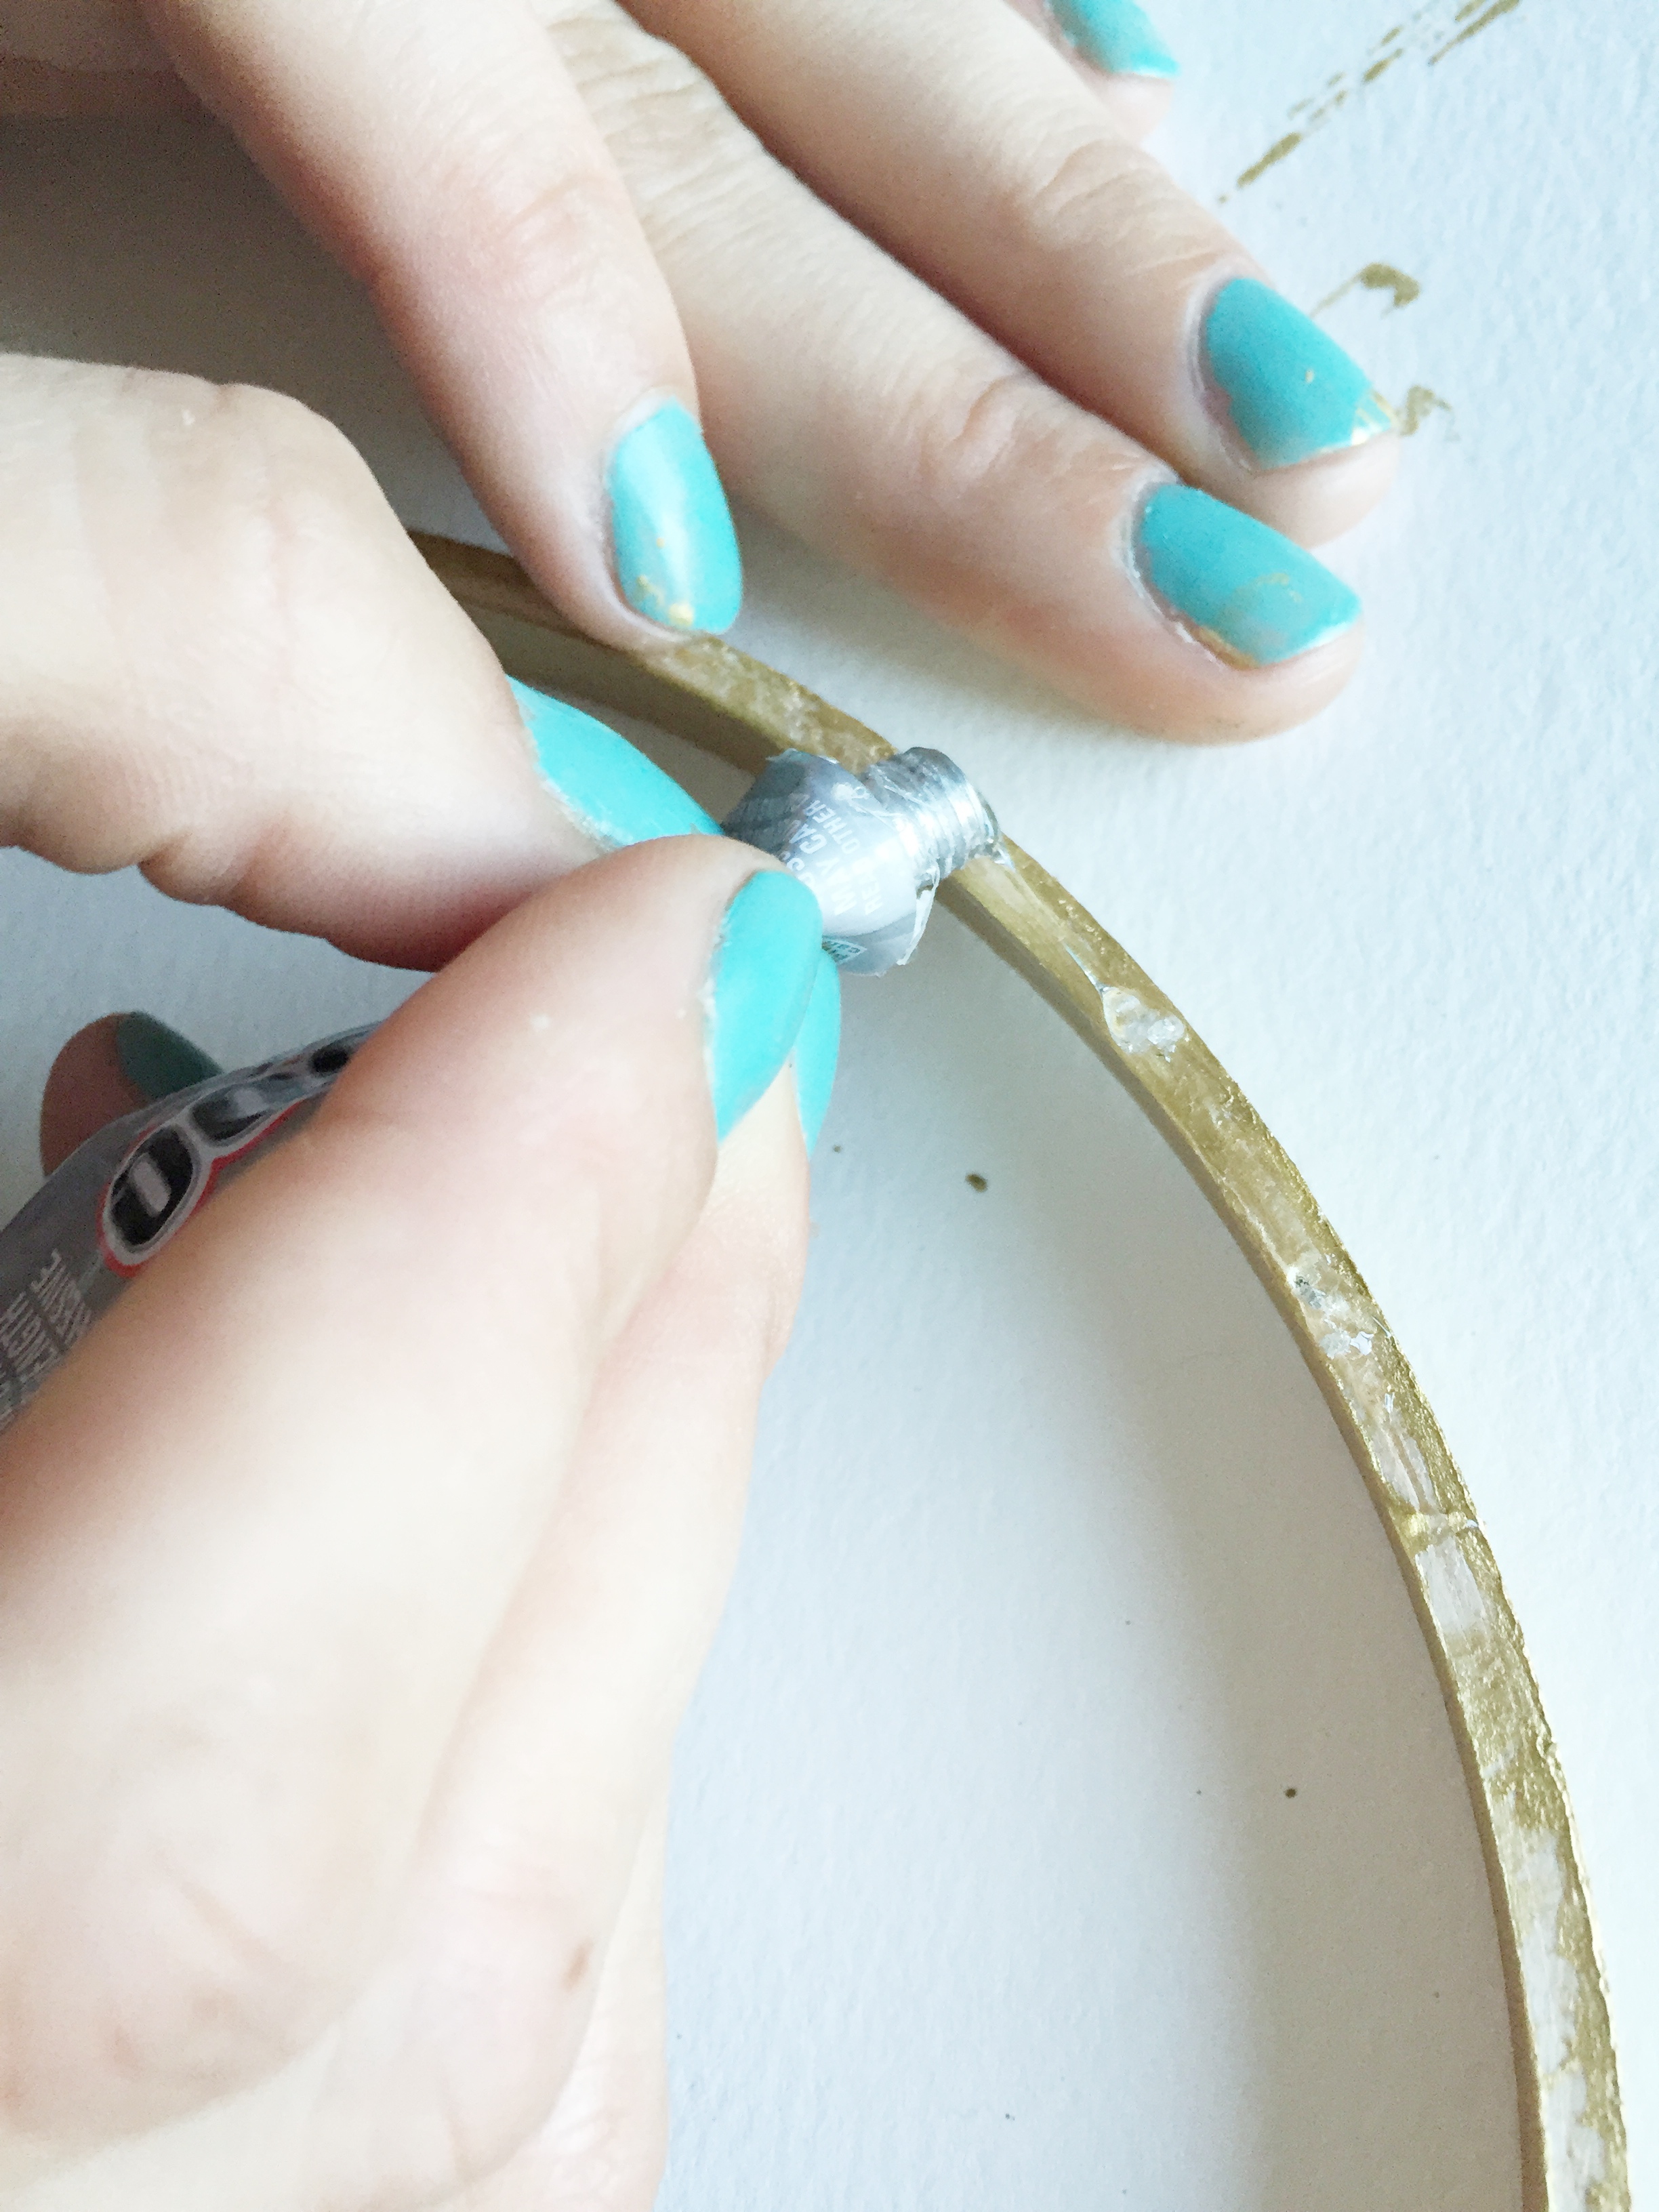 image: it wouldn't be a DIY project if your hands didn't get a little dirty credit: gild collective